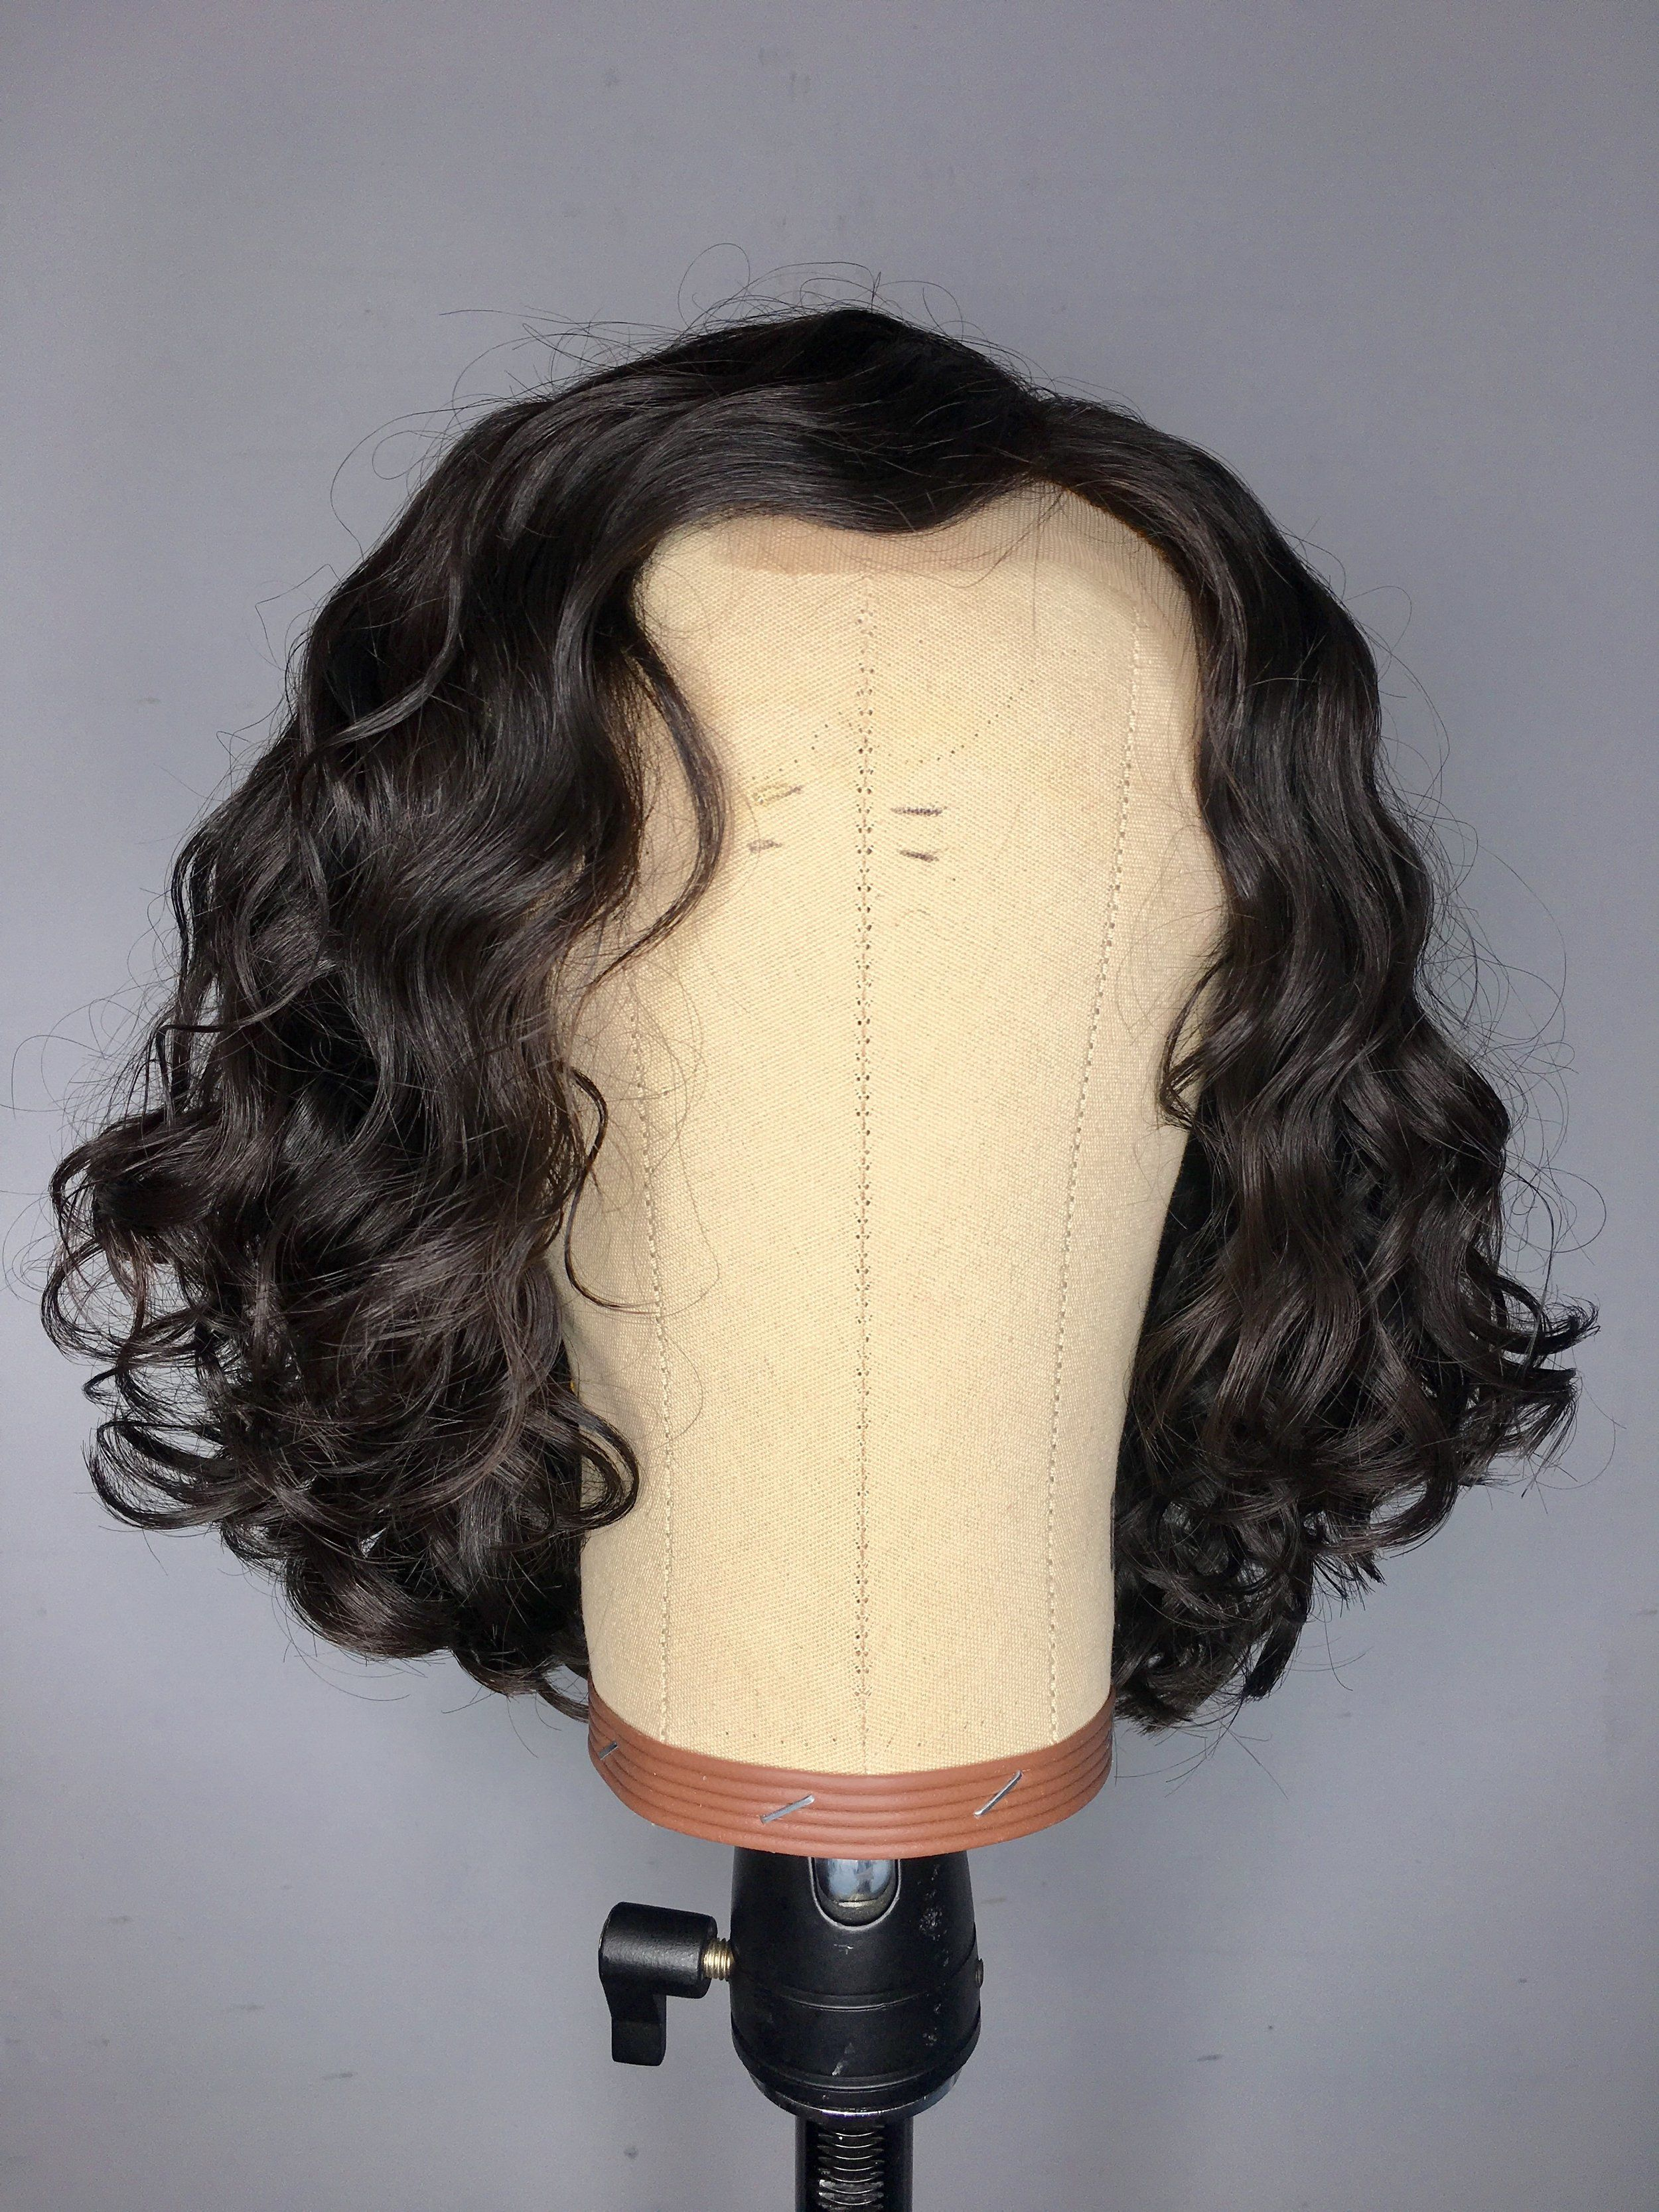 Black Wigs For Black Women Exotic Wave Hair Natural Wave Lace Front Wigs Human Hair Black Wig With Bangs Deep Wave Drawstring Ponytail